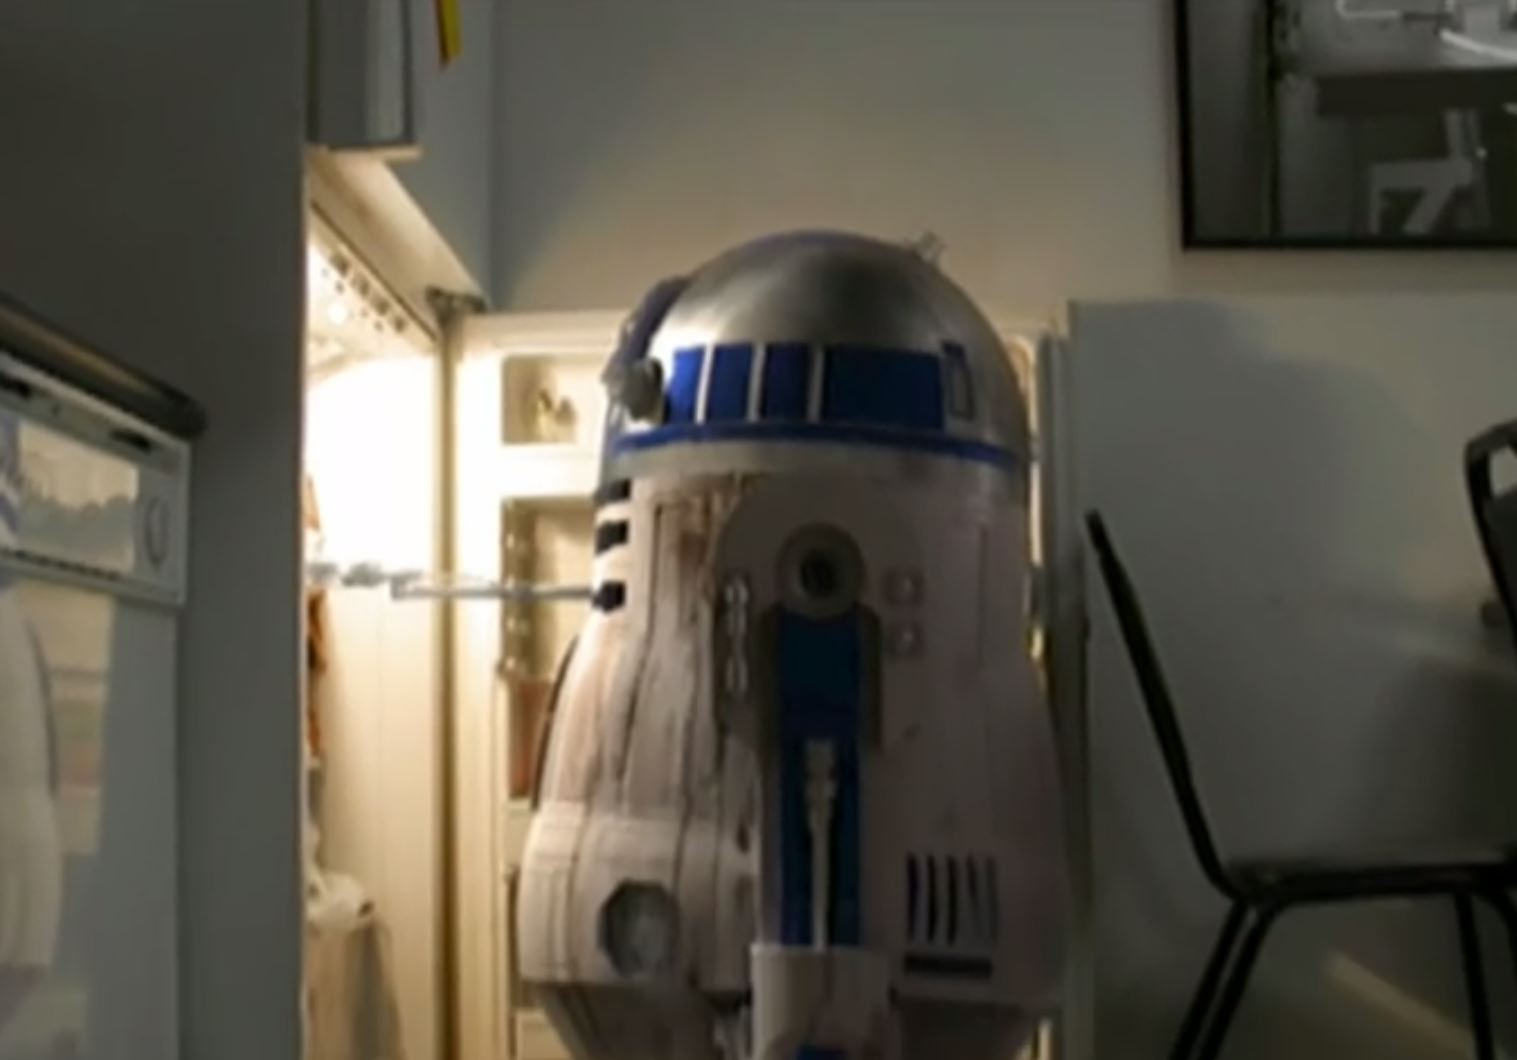 r2-d2 obeso star wars